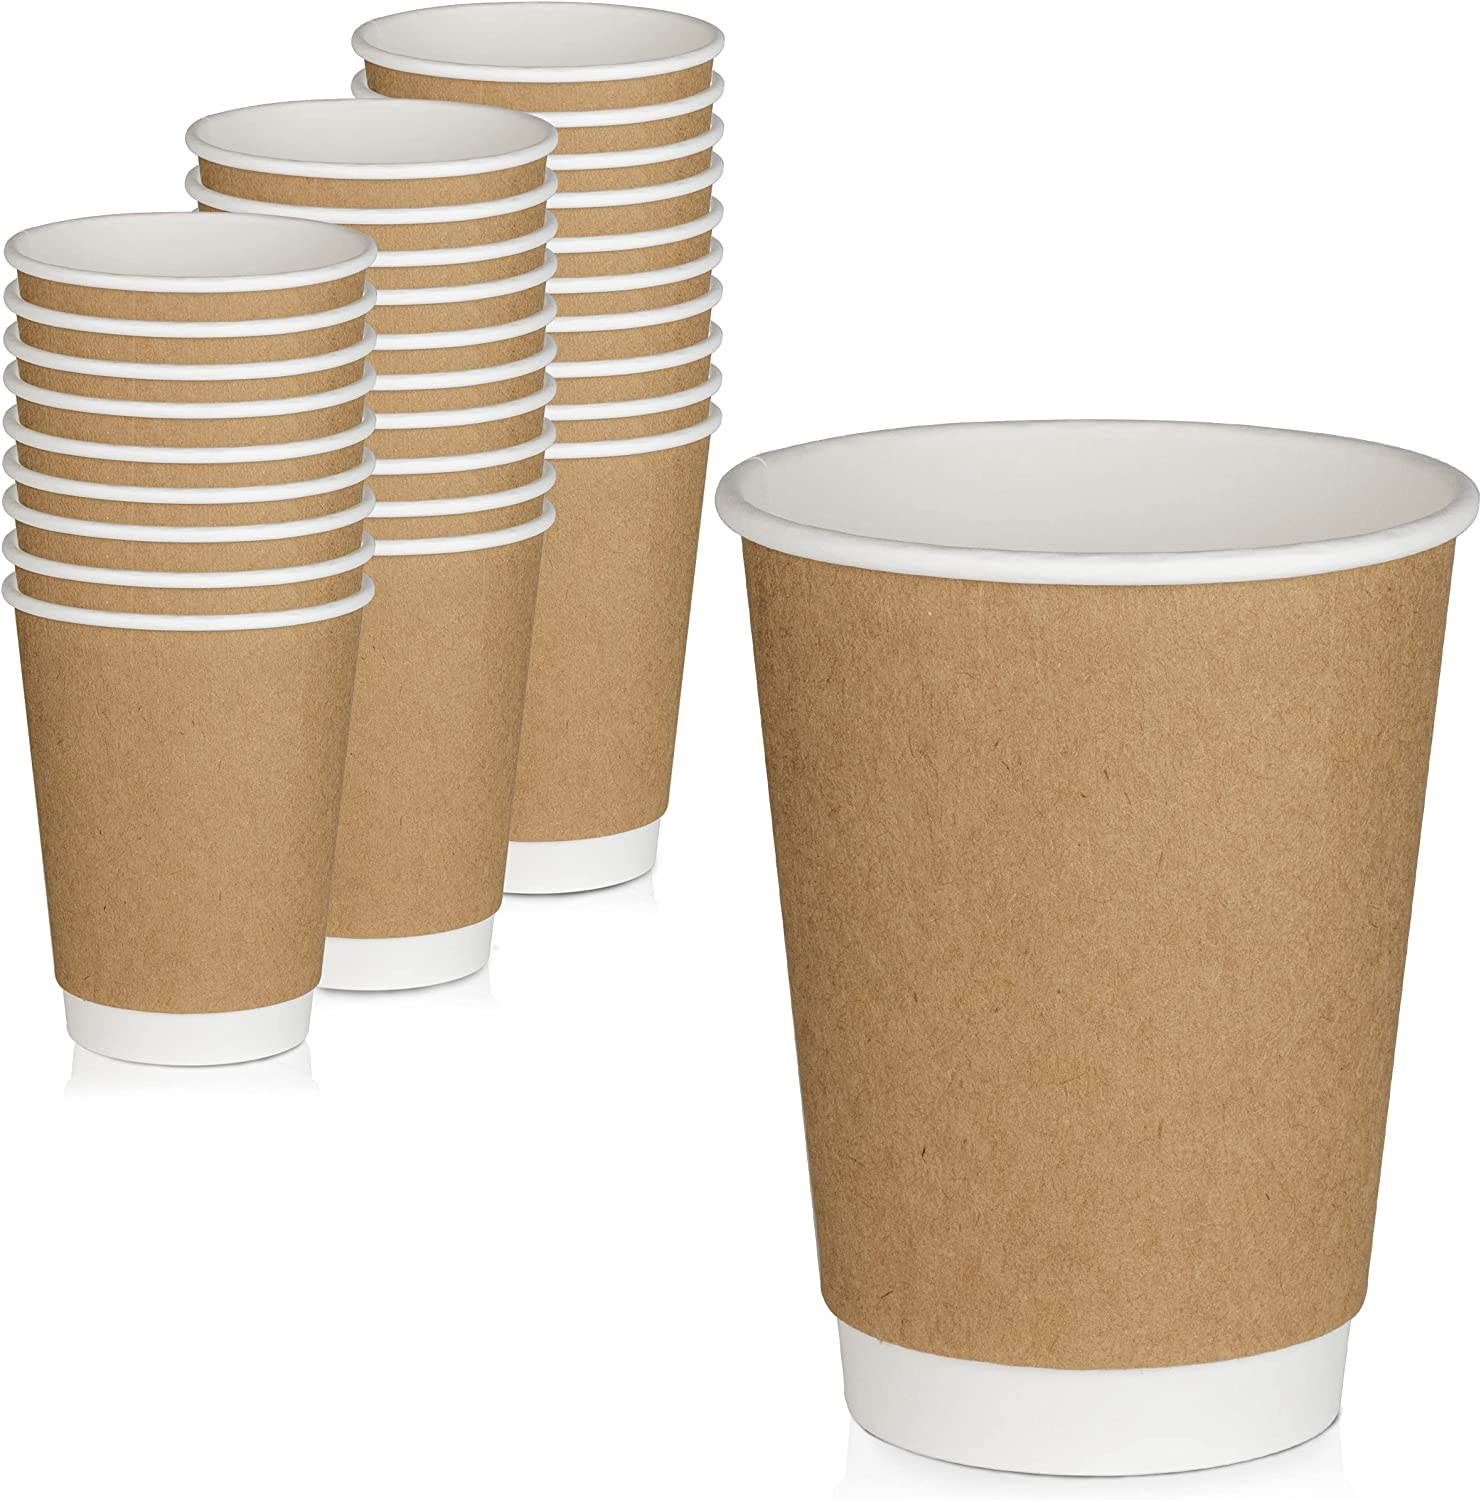 [50 Pack] Disposable Coffee Cups - 12 oz Kraft Brown Double Wall Insulated To Go Coffee Cups - Kraft Paper Cups for Chocolate, Espresso, and Cocoa Drinks - Sturdy, Food Safe, and Eco-Friendly Hot Cups